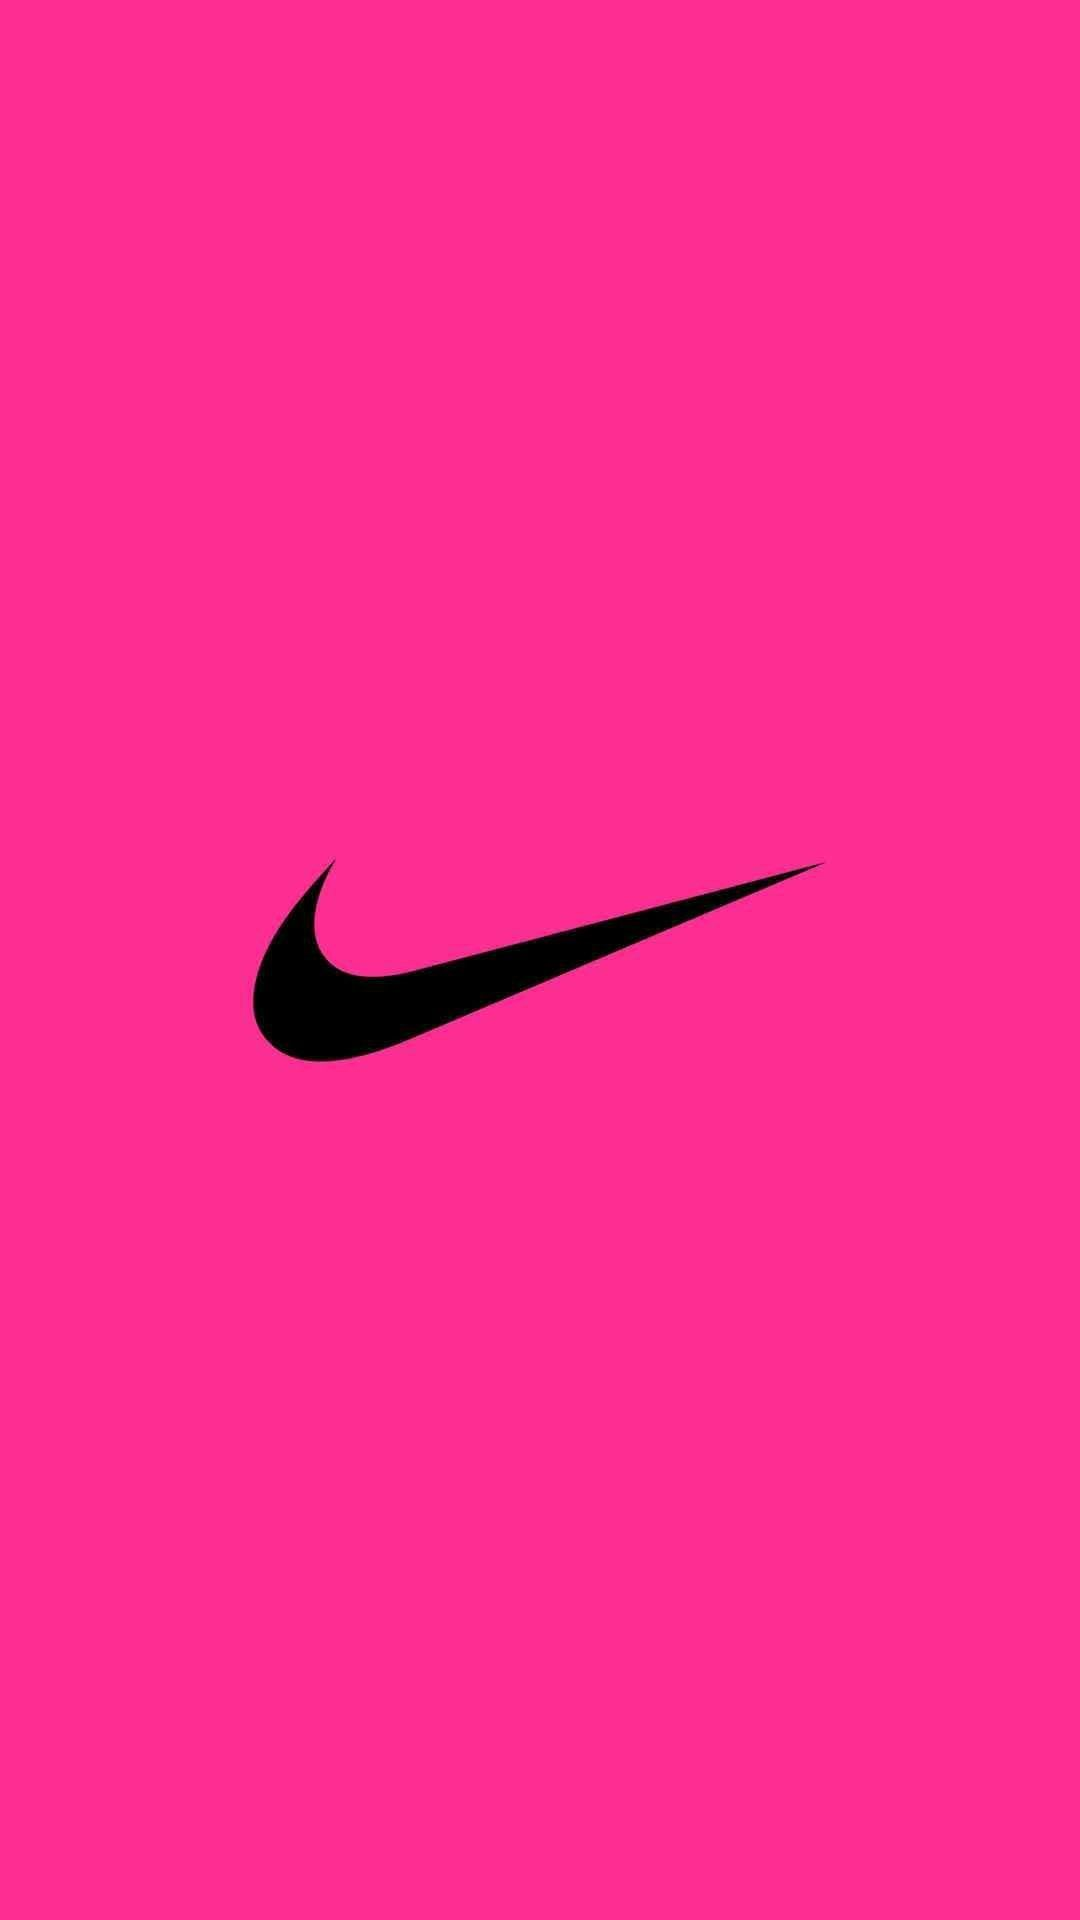 Under Armour Background Image In 2020 Pink Nike Wallpaper Nike Wallpaper Nike Logo Wallpapers